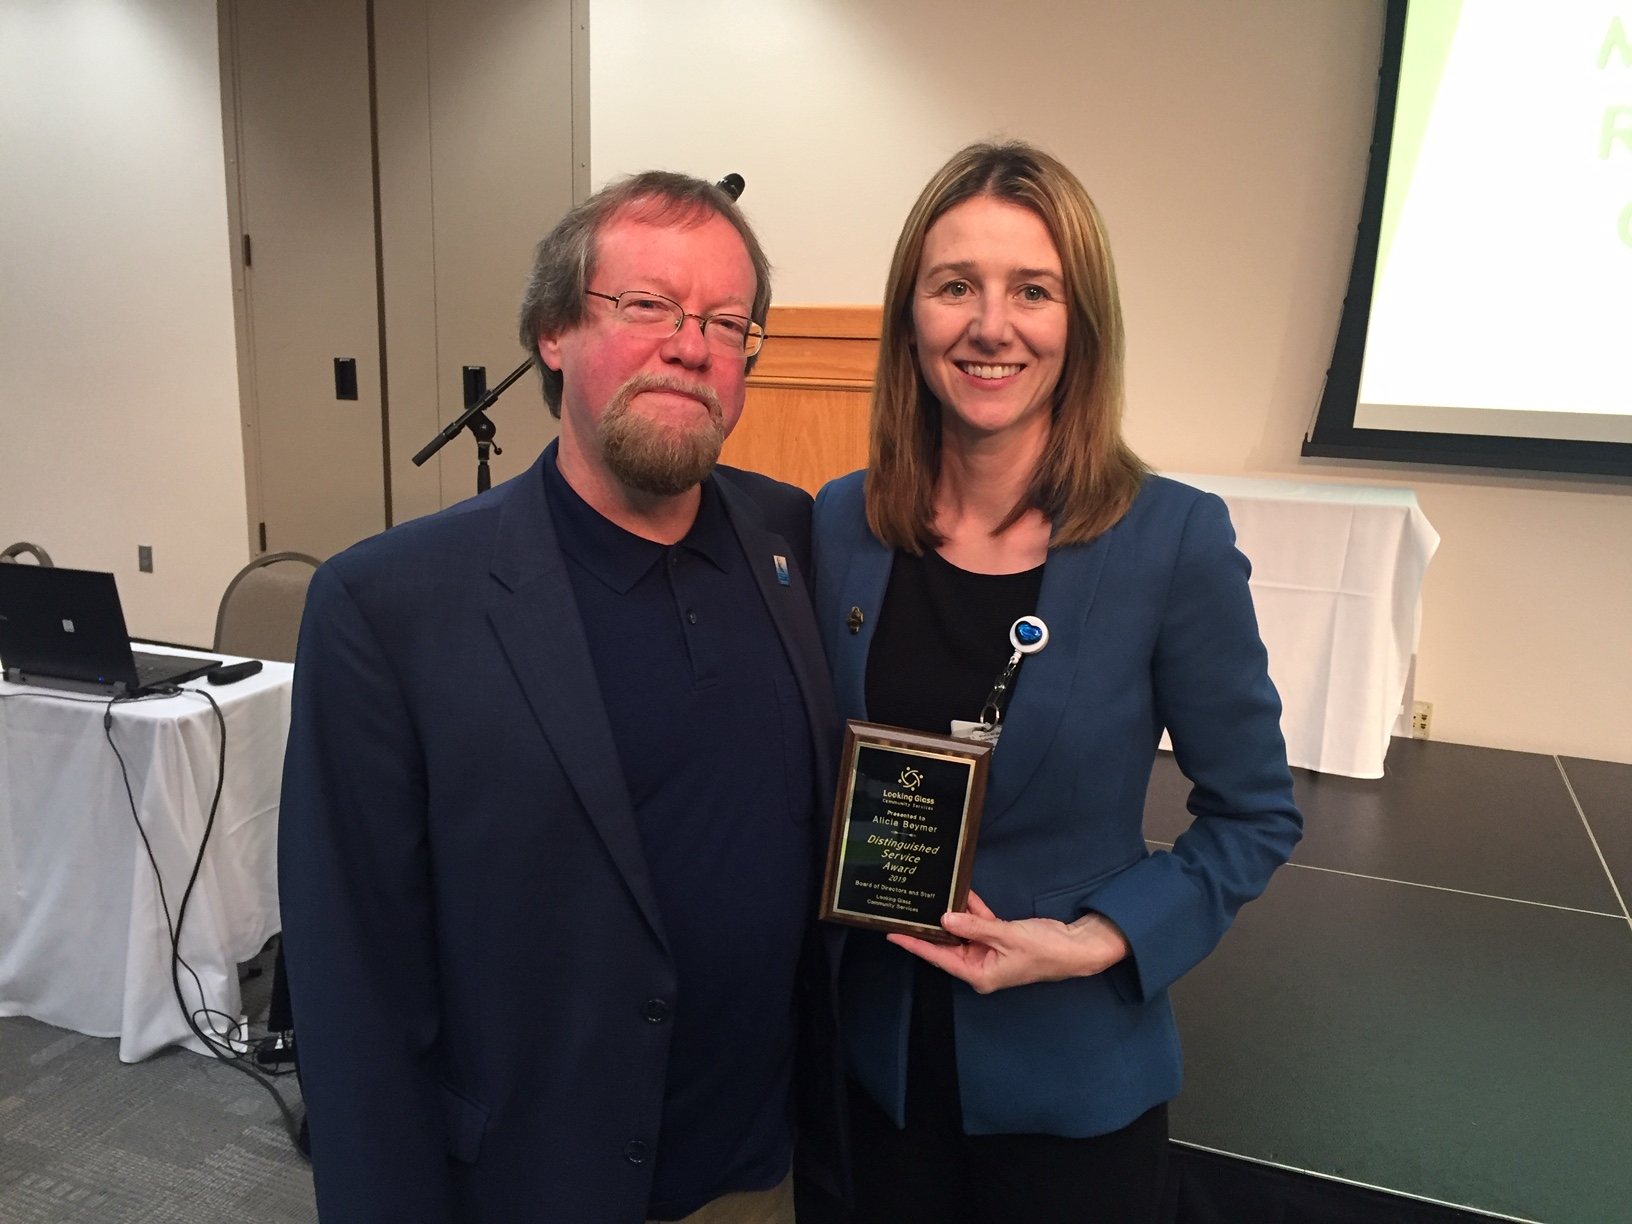 Looking Glass CEO Craig Opperman stands with PeaceHealth Director of Home Care Services Alicia Beymer after presenting her with a Distinguished Service Award.